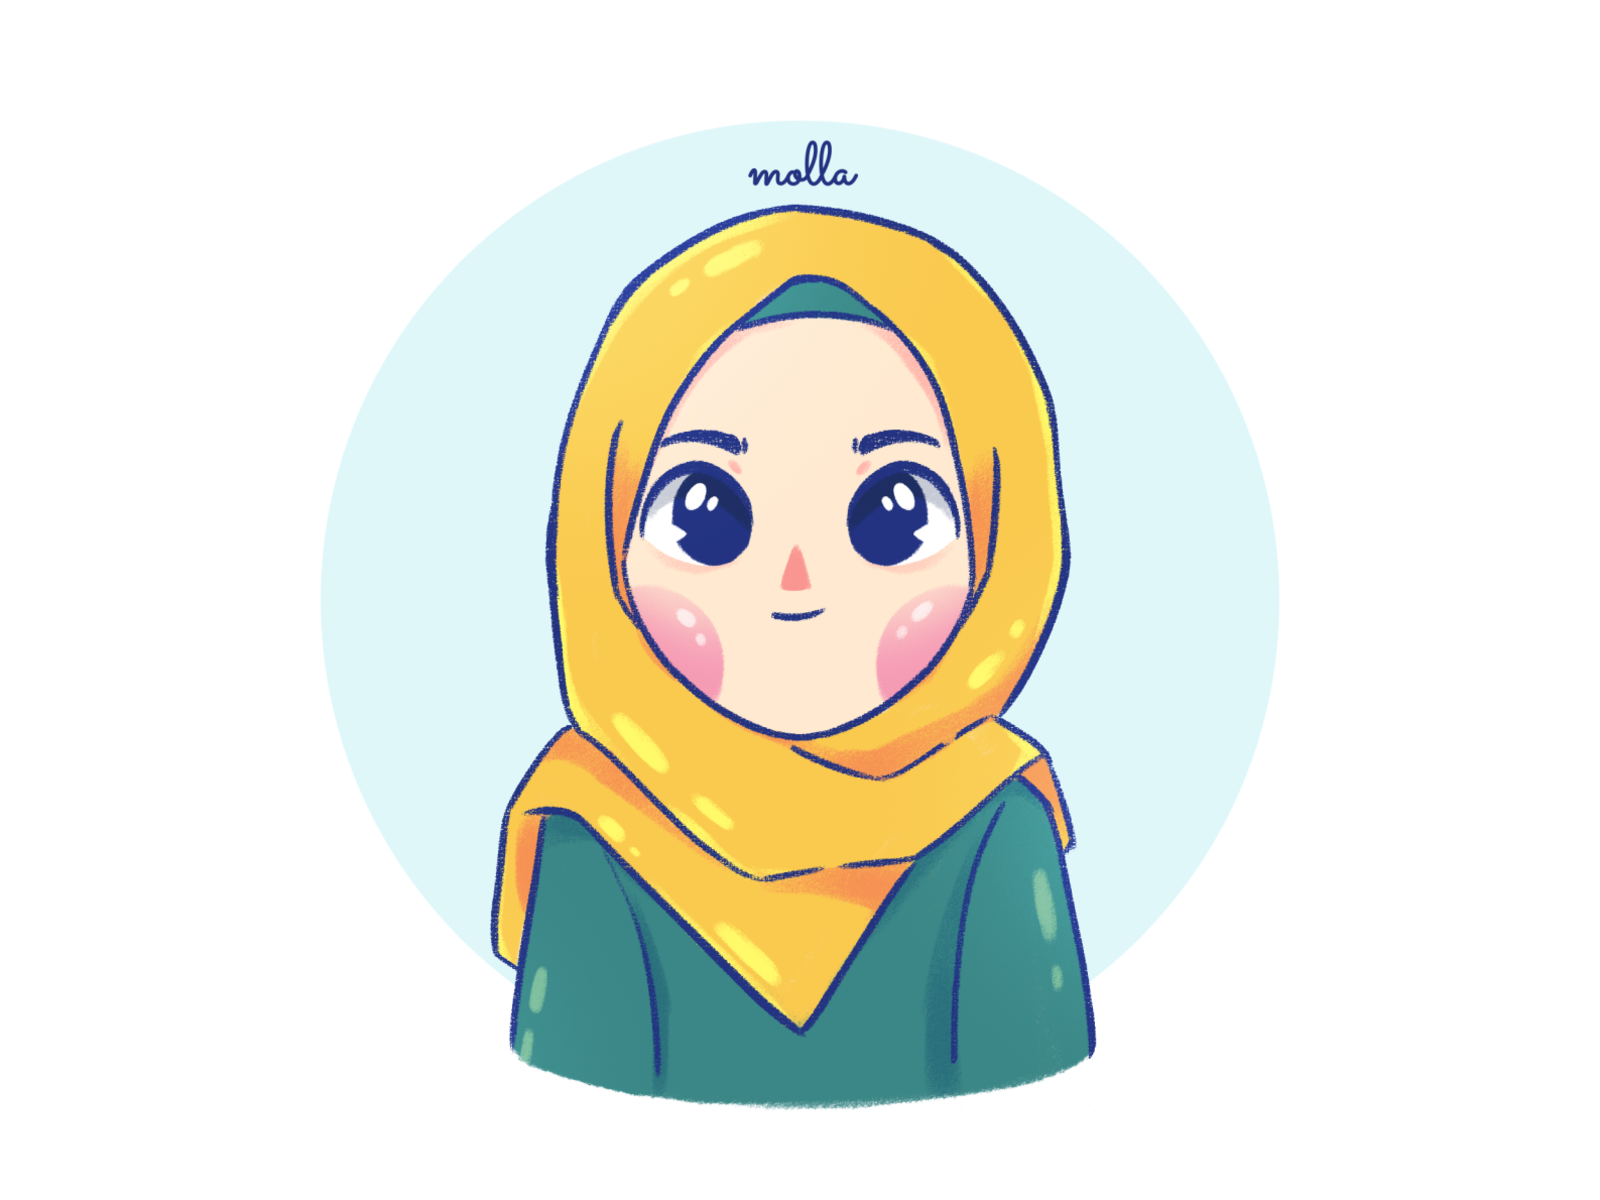 Super Duper Cute Hijab Girl Cartoon Portrait by Angga Indratama on